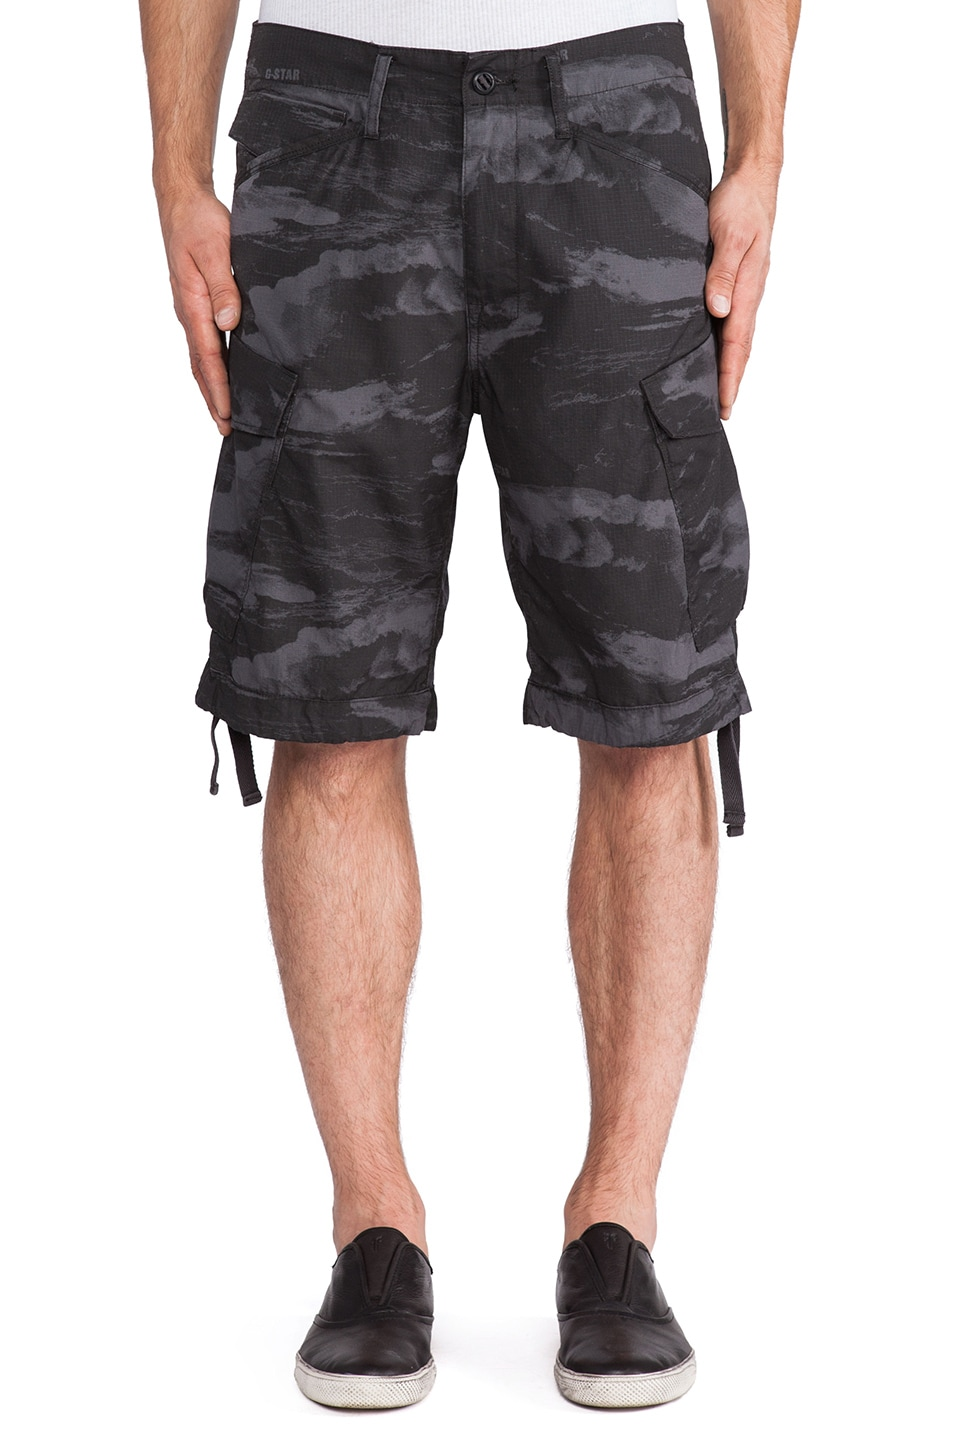 G-Star Rovic Loose Wave Bermuda Cargo Short in Raven